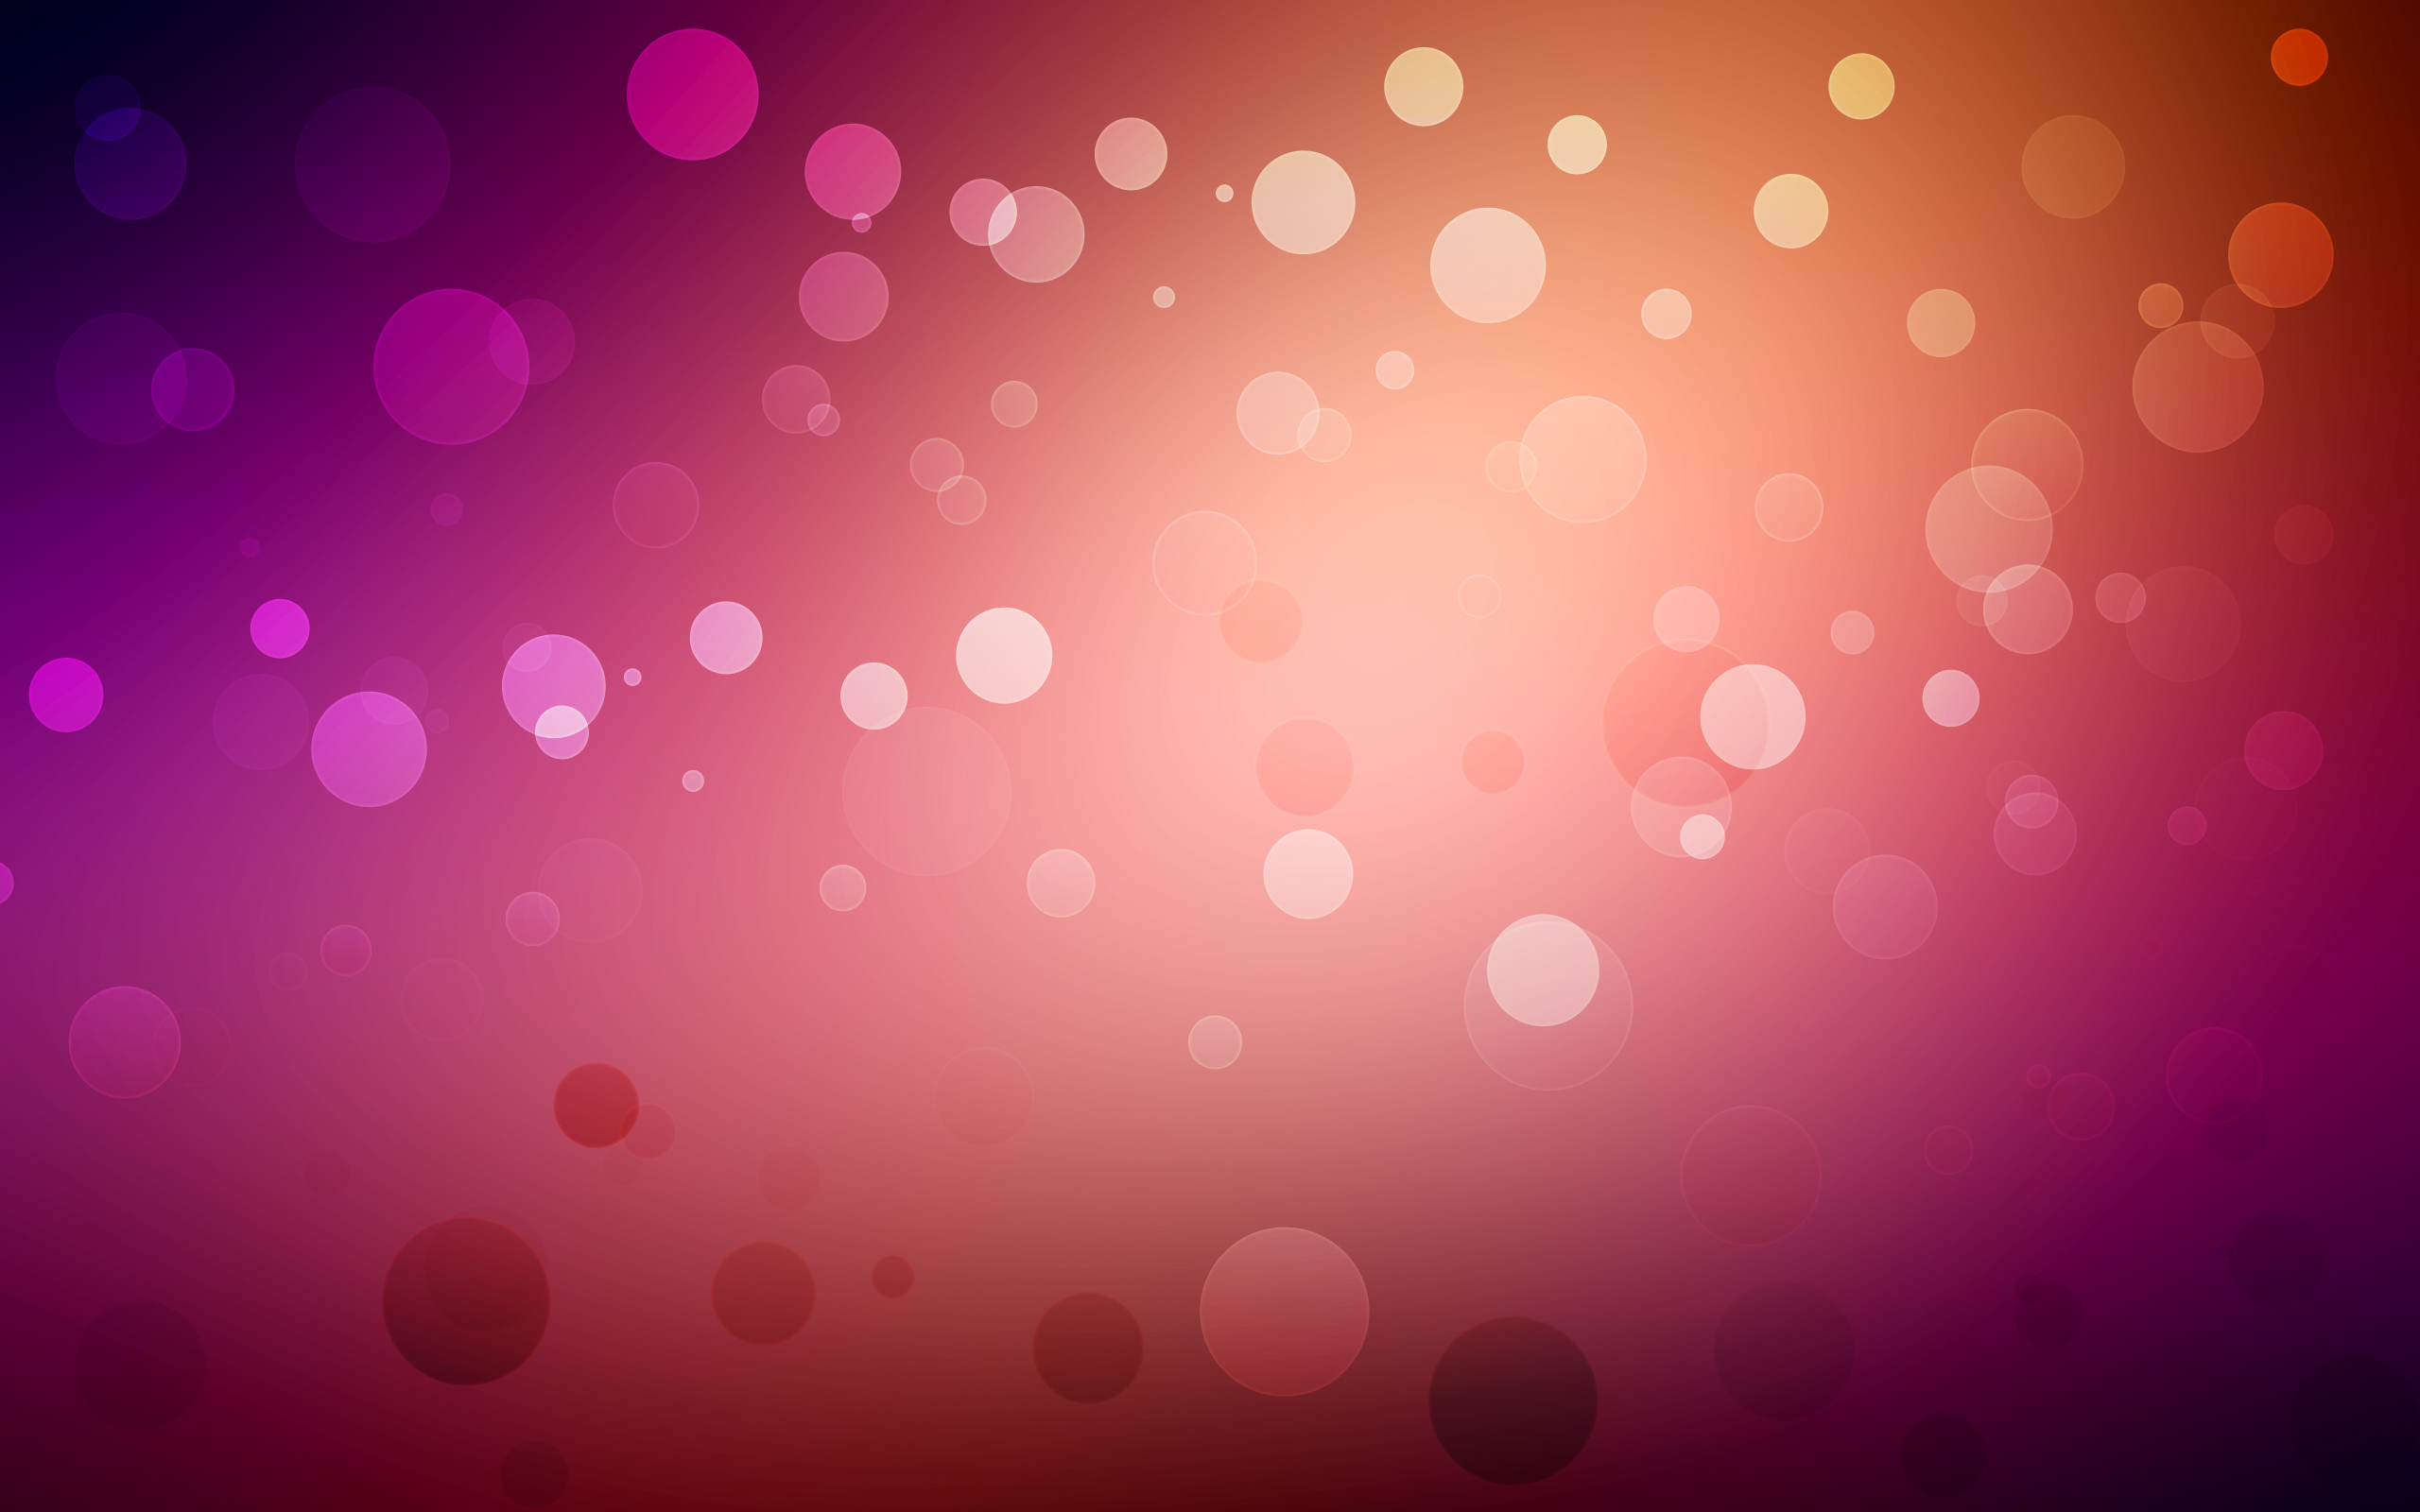 Polkadot Effect HD - Polkadot Effect HD